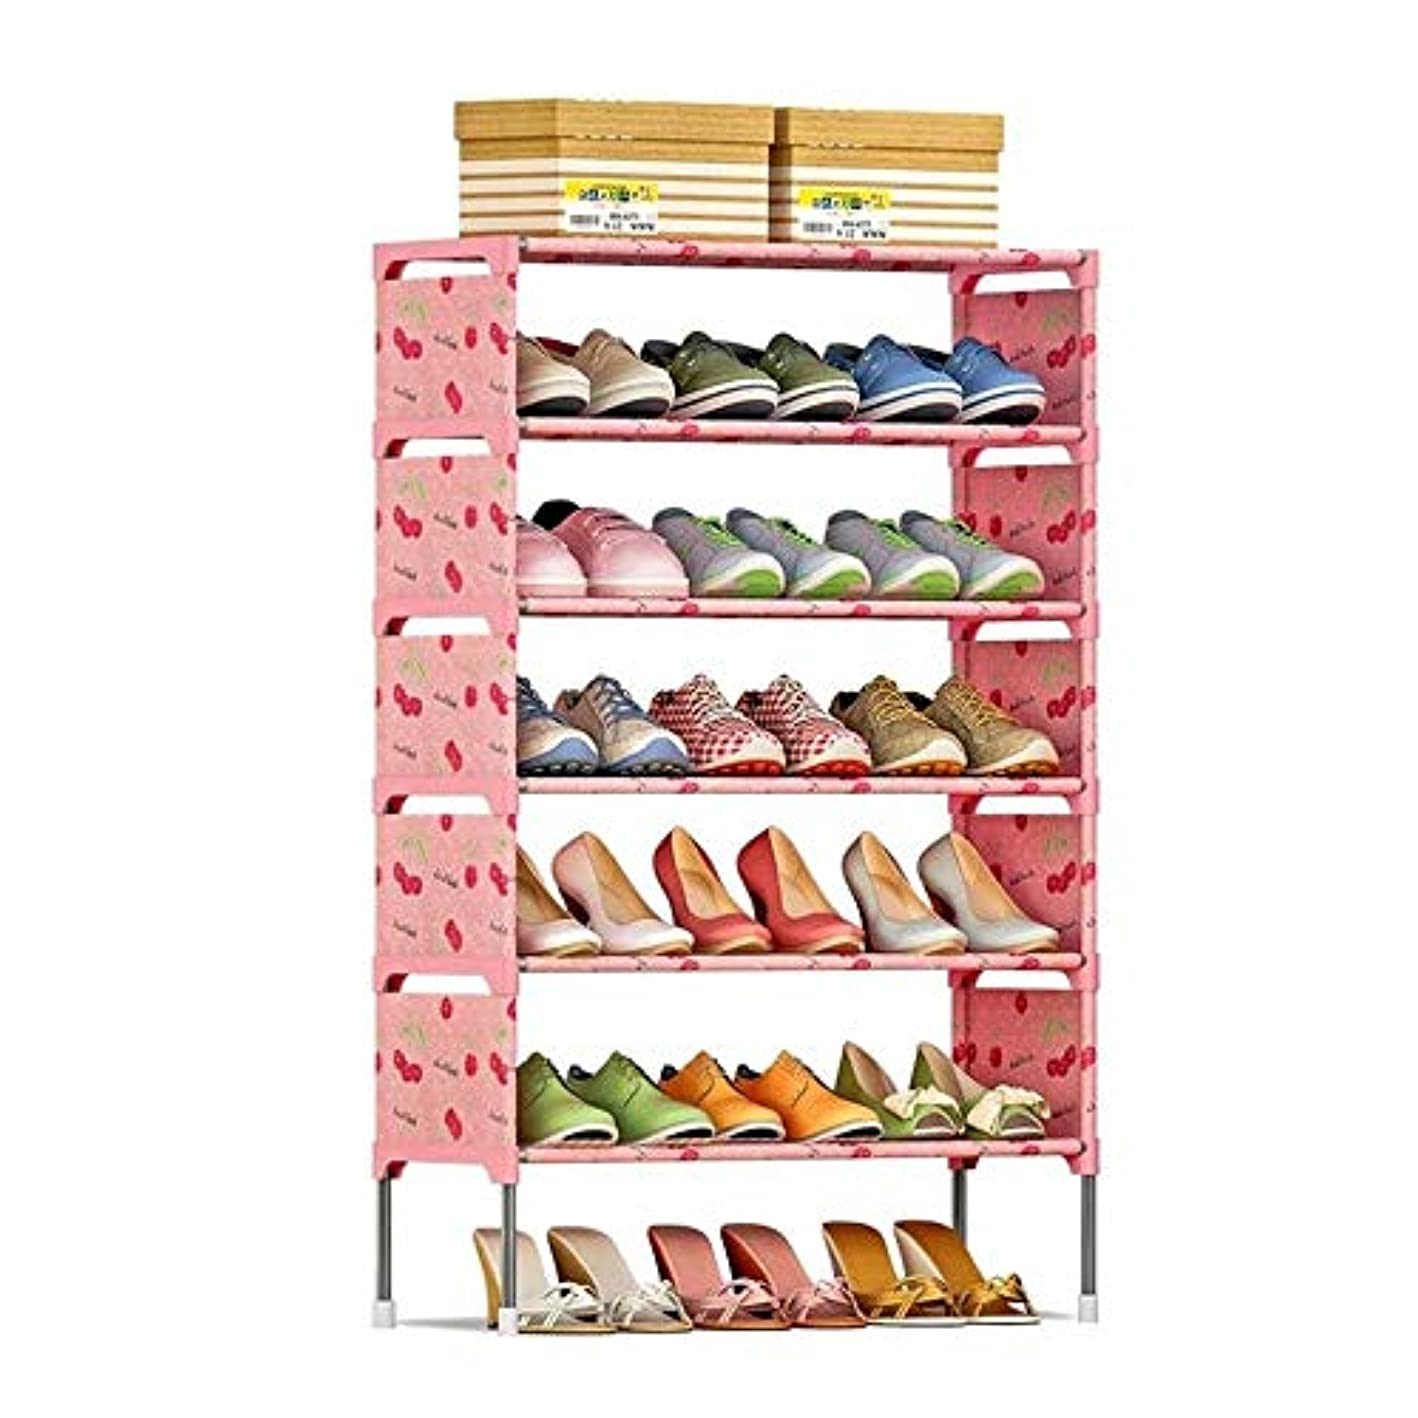 Baiyun Flyin Shoe Rack, Space Saving Shoe Cabinet, Dustproof and Moistureproof Shoe Organizer, Living Room Furniture (Color : A) bcyjrg8598272